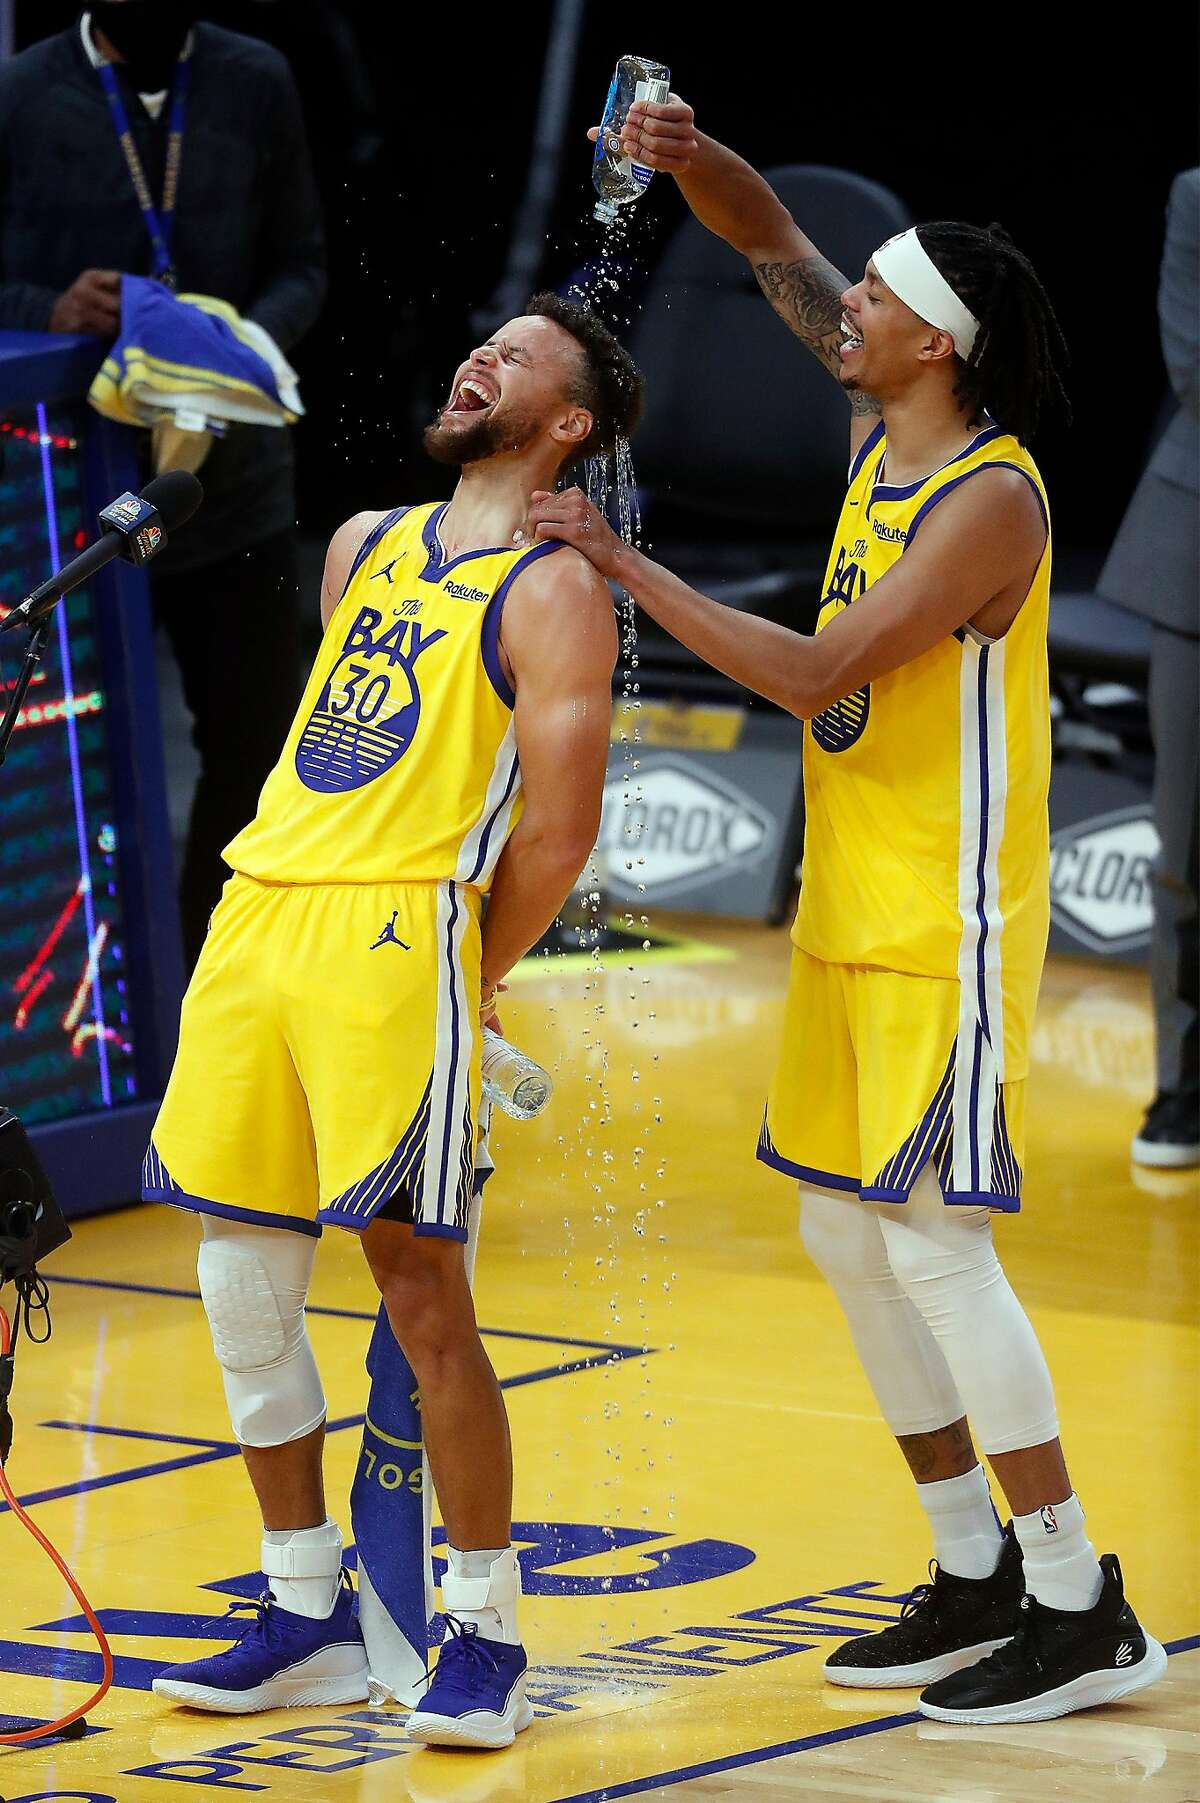 After scoring a career high 62 points, Golden State Warriors' Stephen Curry gets a bottle of water poured on him by Damion Lee after Warriors' 137-122 win over Portland Trail Blazers in NBA game at Chase Center in San Francisco, Calif., on Sunday, January 3, 2021.